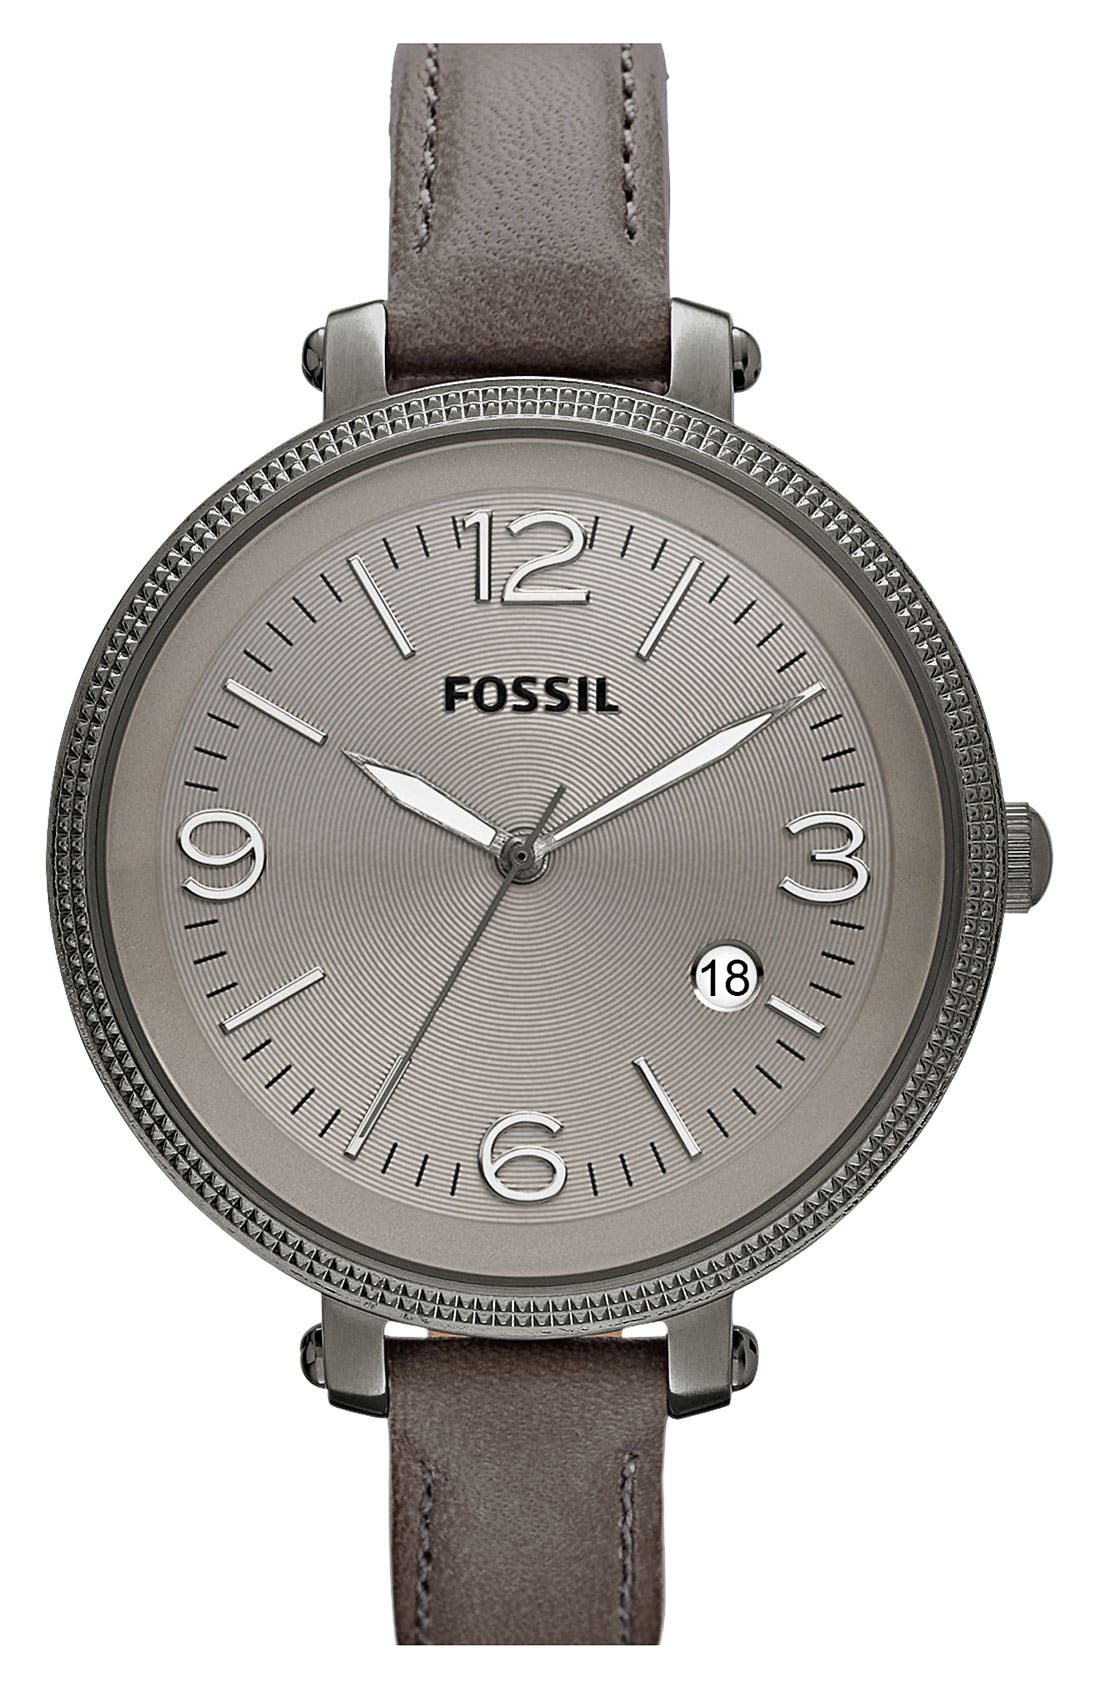 Main Image - Fossil 'Heather' Round Leather Strap Watch, 42mm